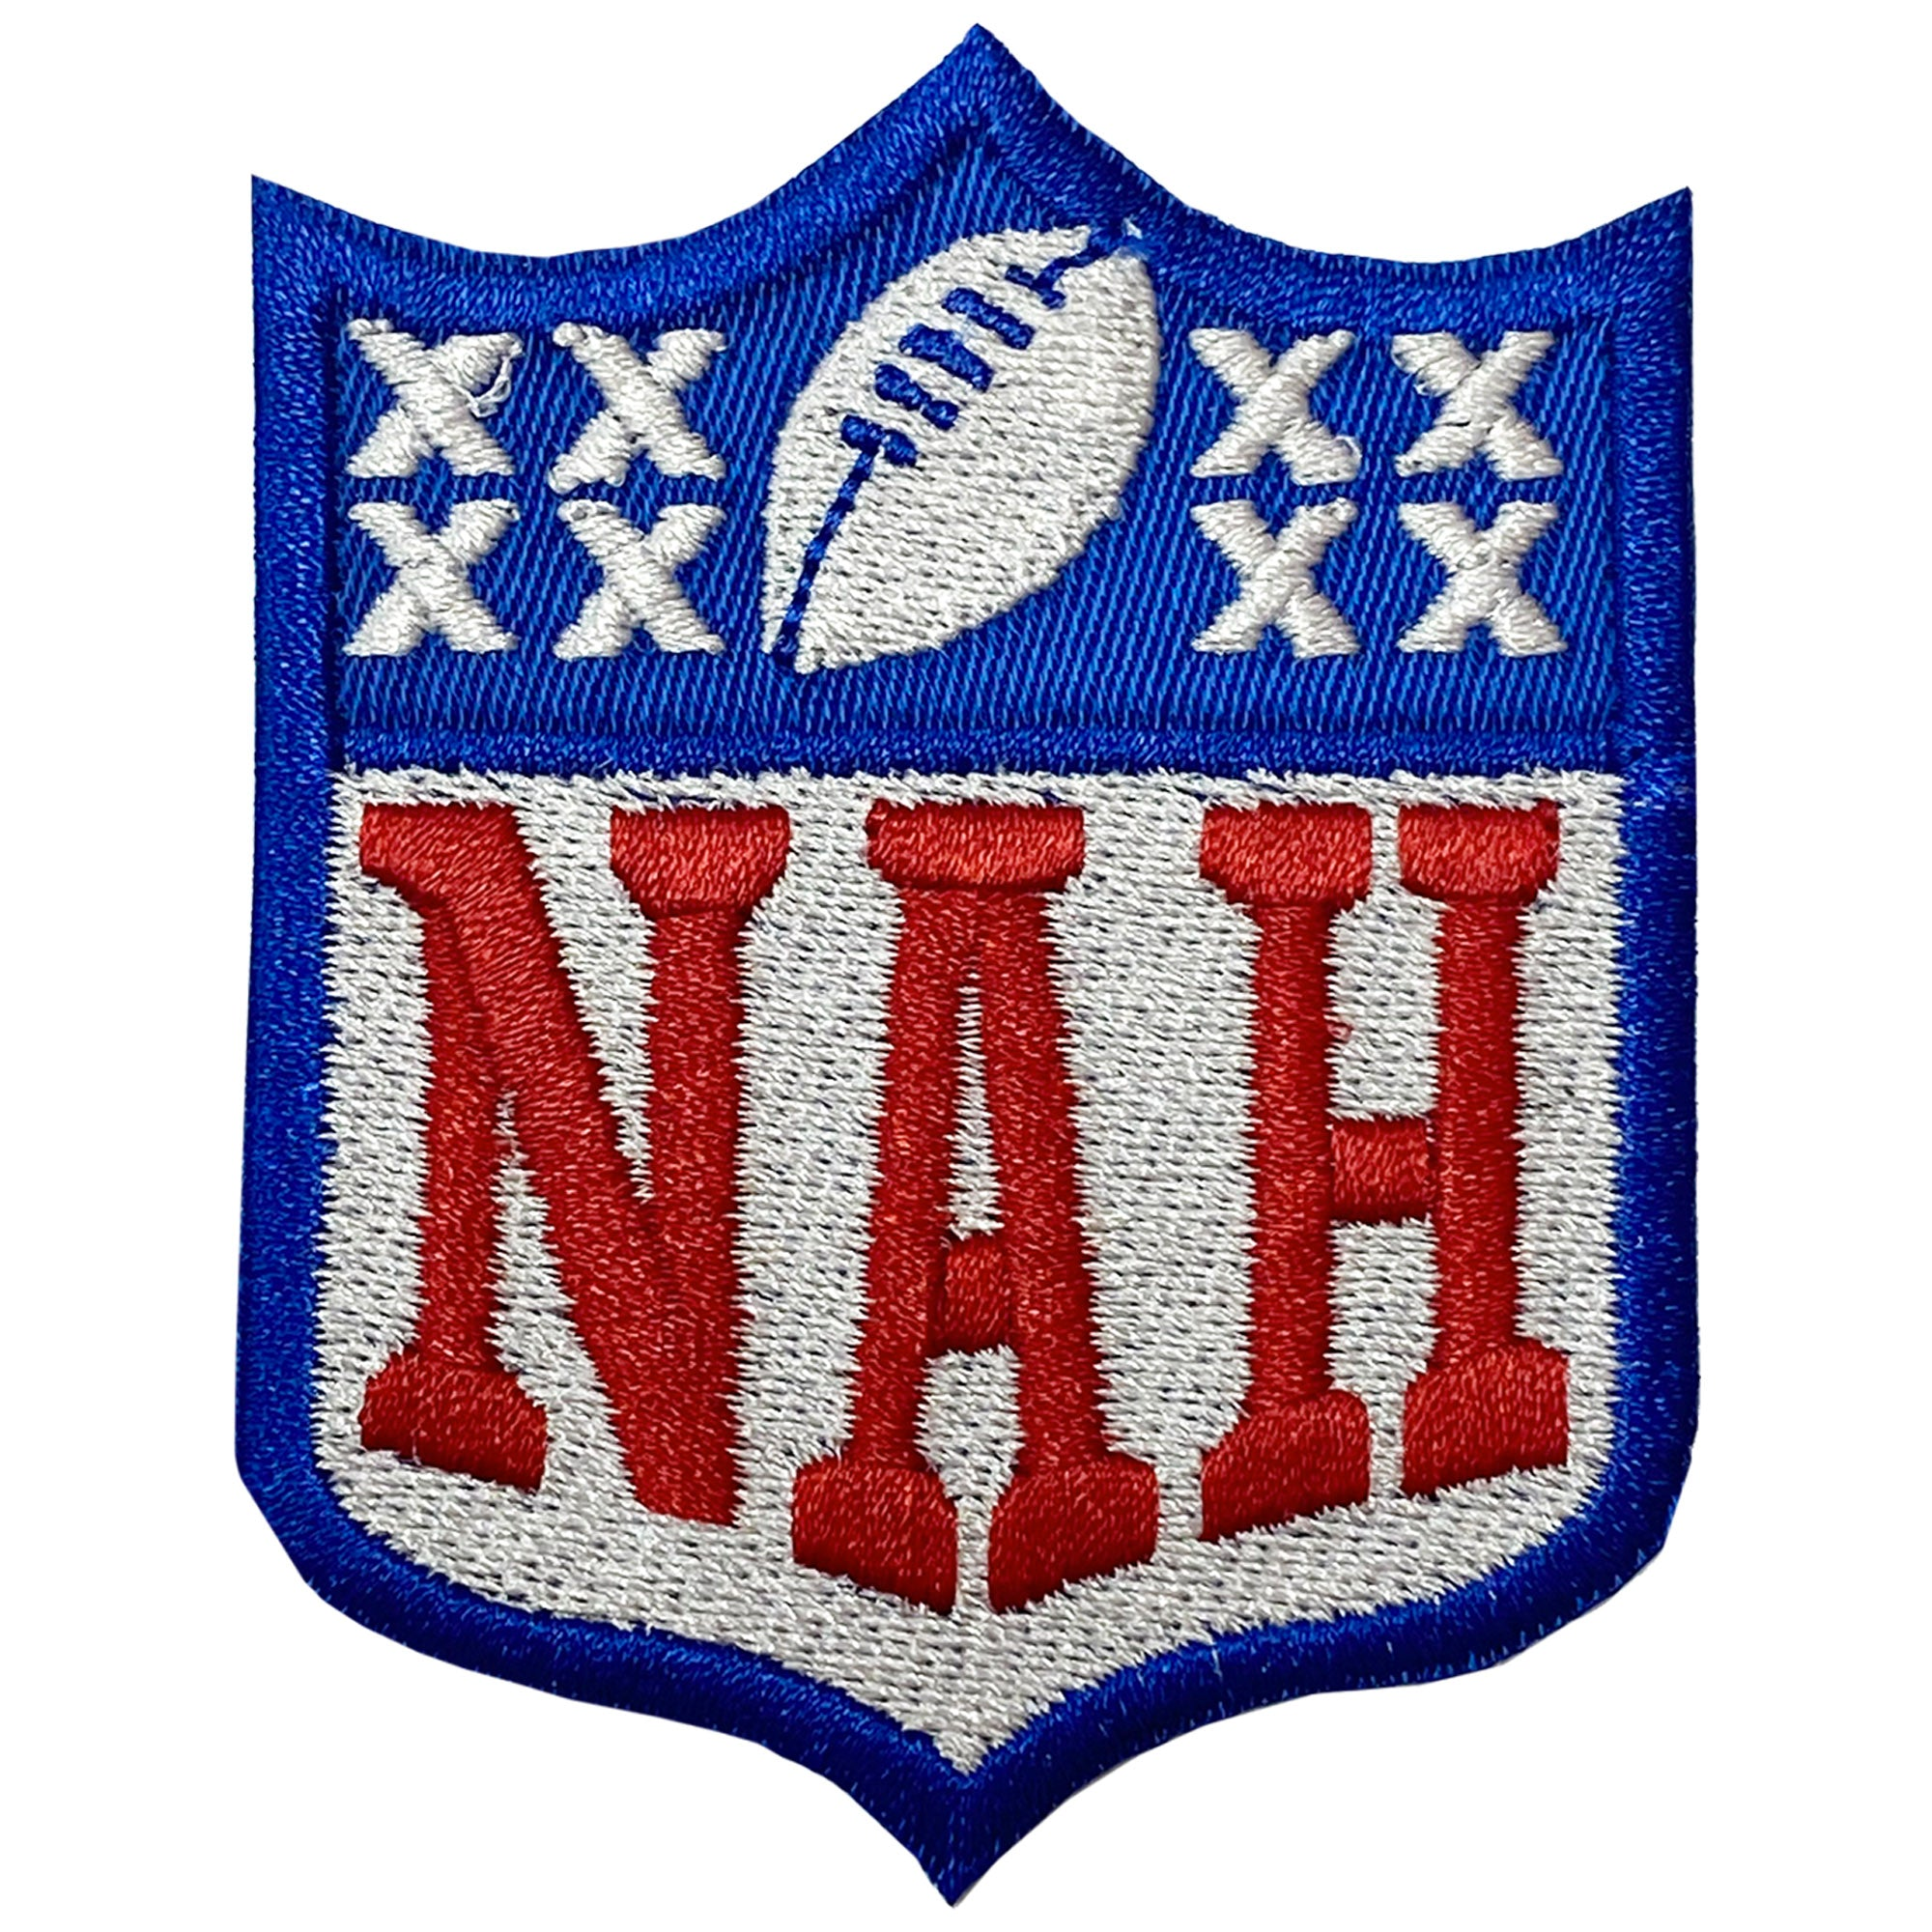 Nah NFL Protest Patch - The Carter Brand - Black By Popular Demand - Rooting For Everybody Black - Black Pride Apparel